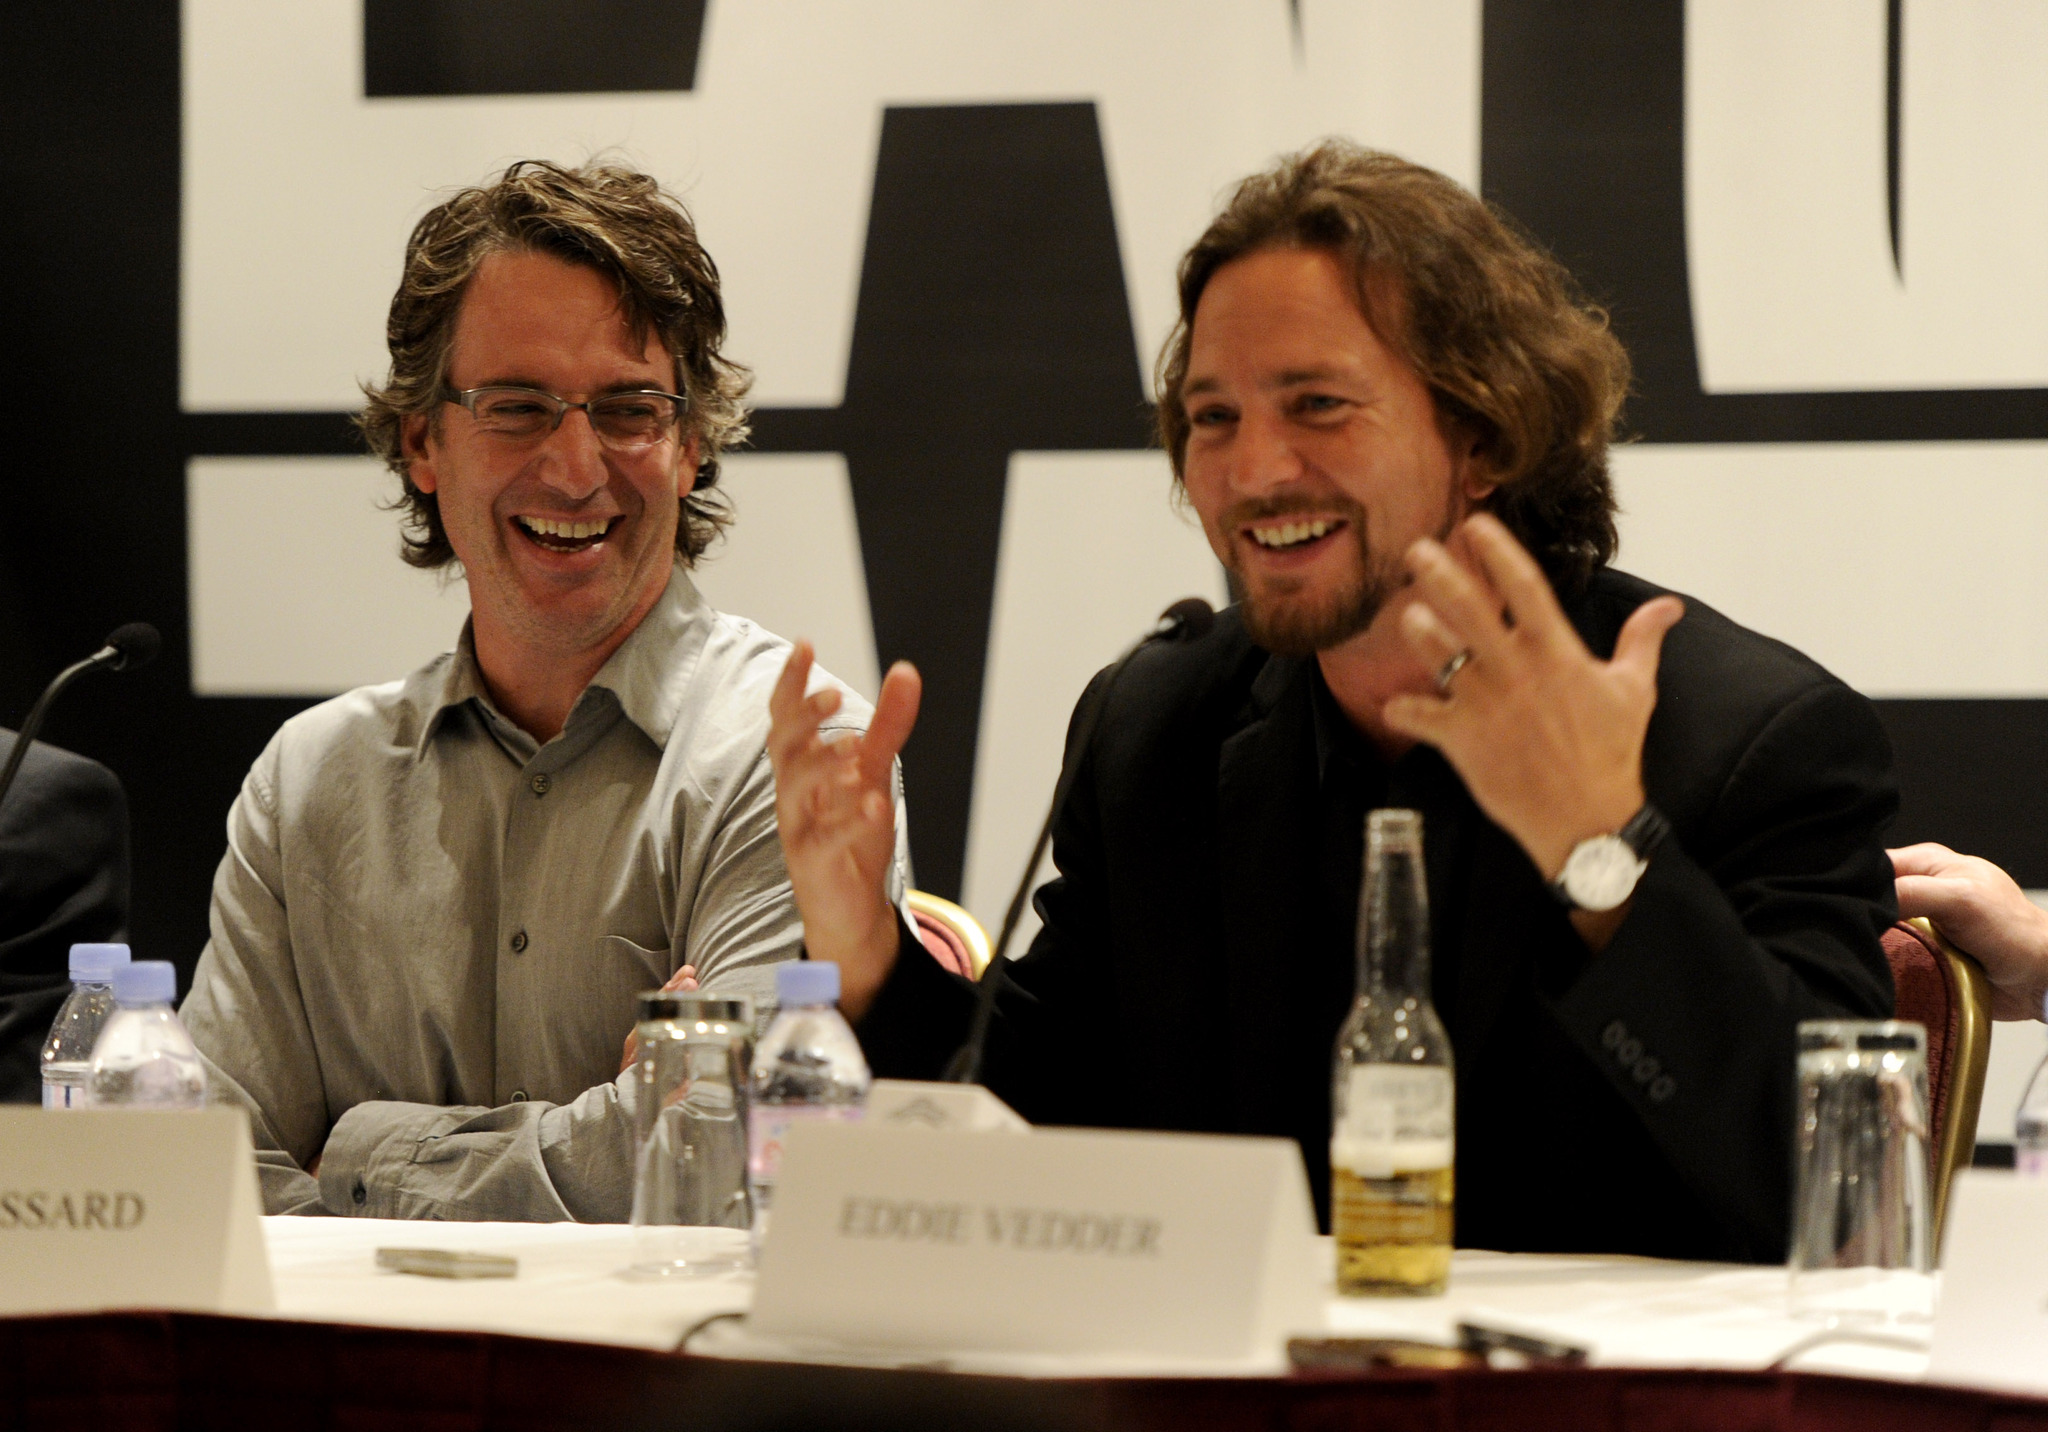 Stone Gossard, Eddie Vedder and Pearl Jam at event of Pearl Jam Twenty (2011)